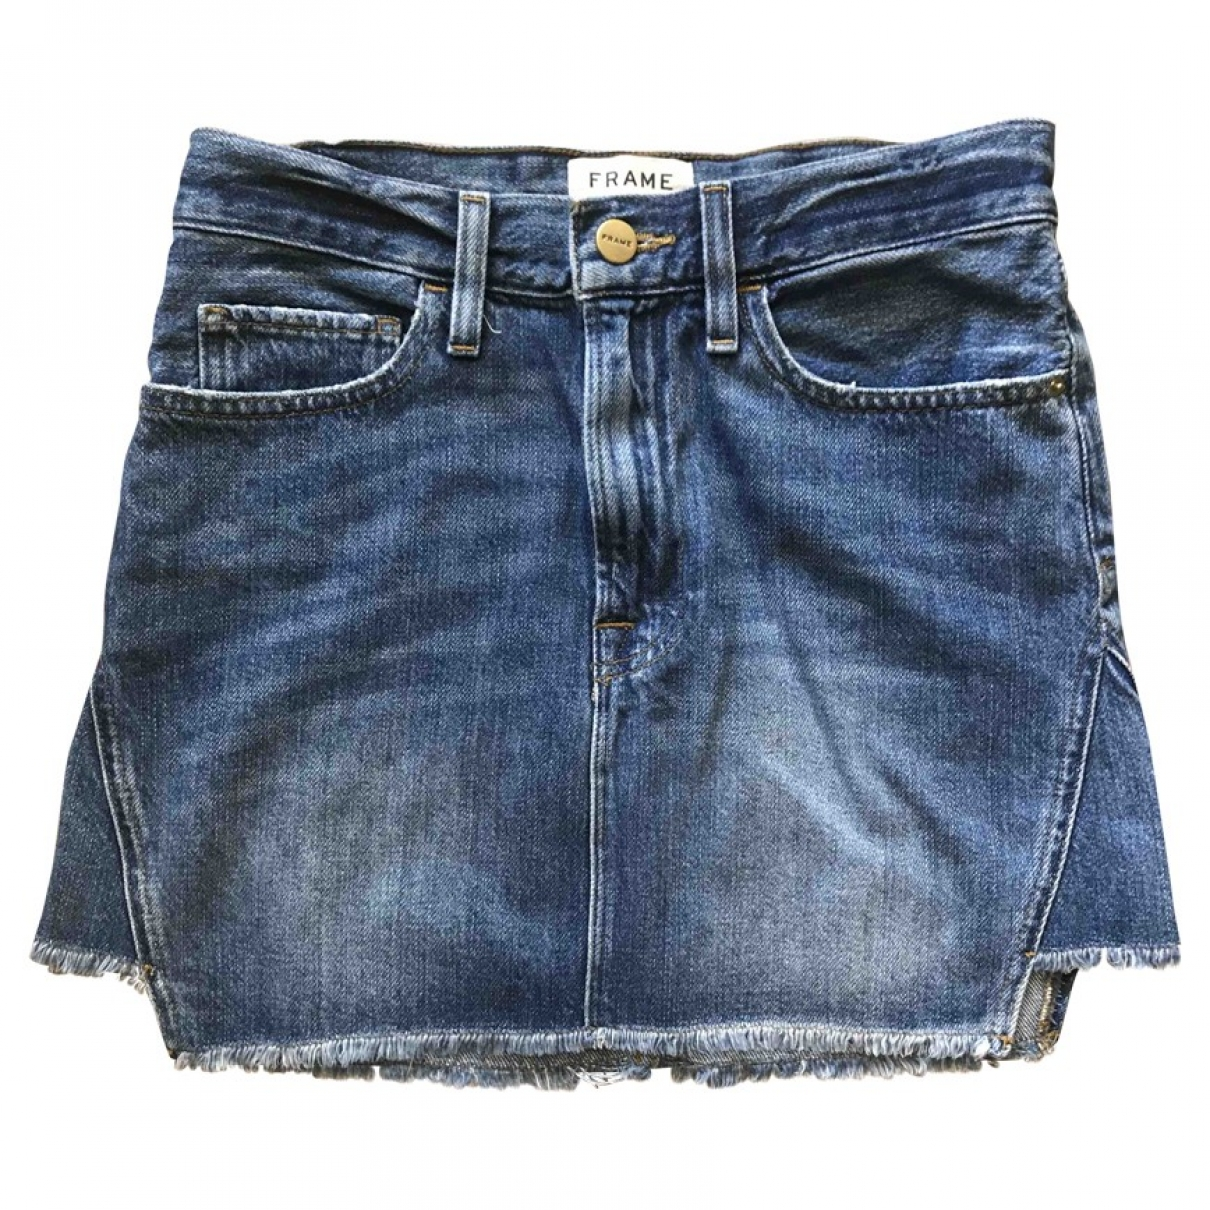 Frame Denim \N Blue Denim - Jeans skirt for Women XS International